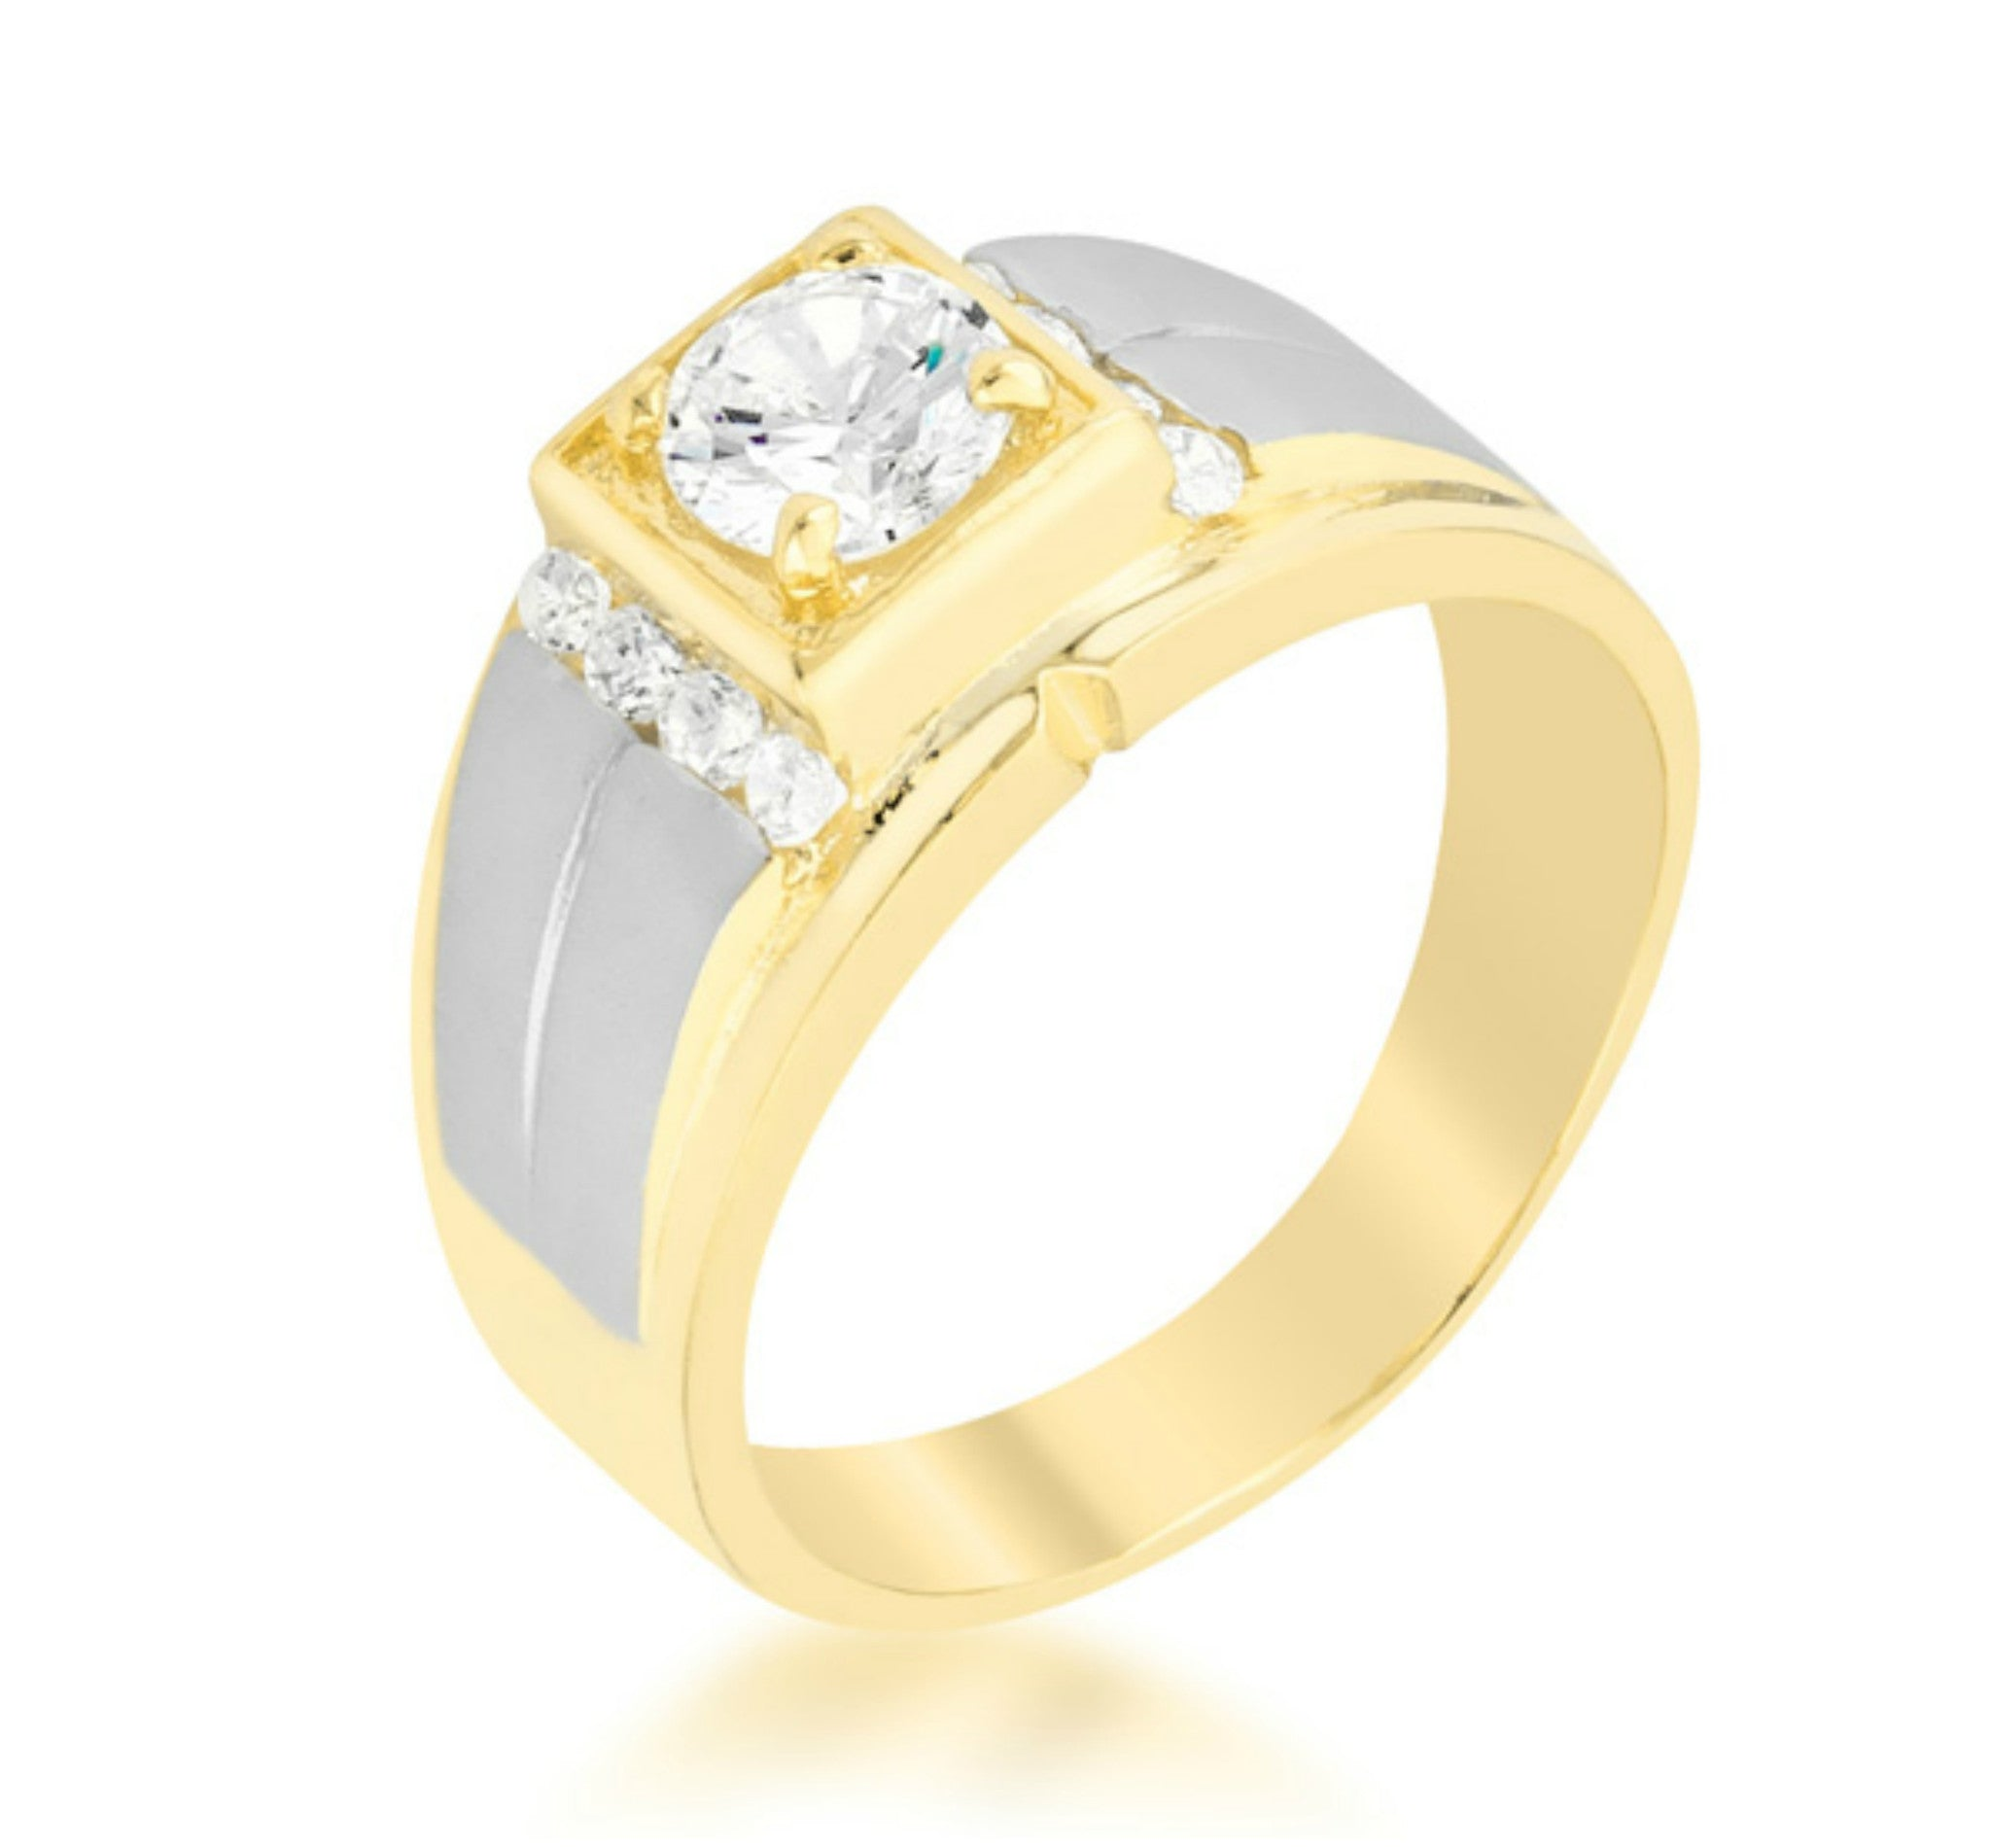 toned yellow bezel conflict wedding bands products five tone palladium white two gold engagement diamond free ring band